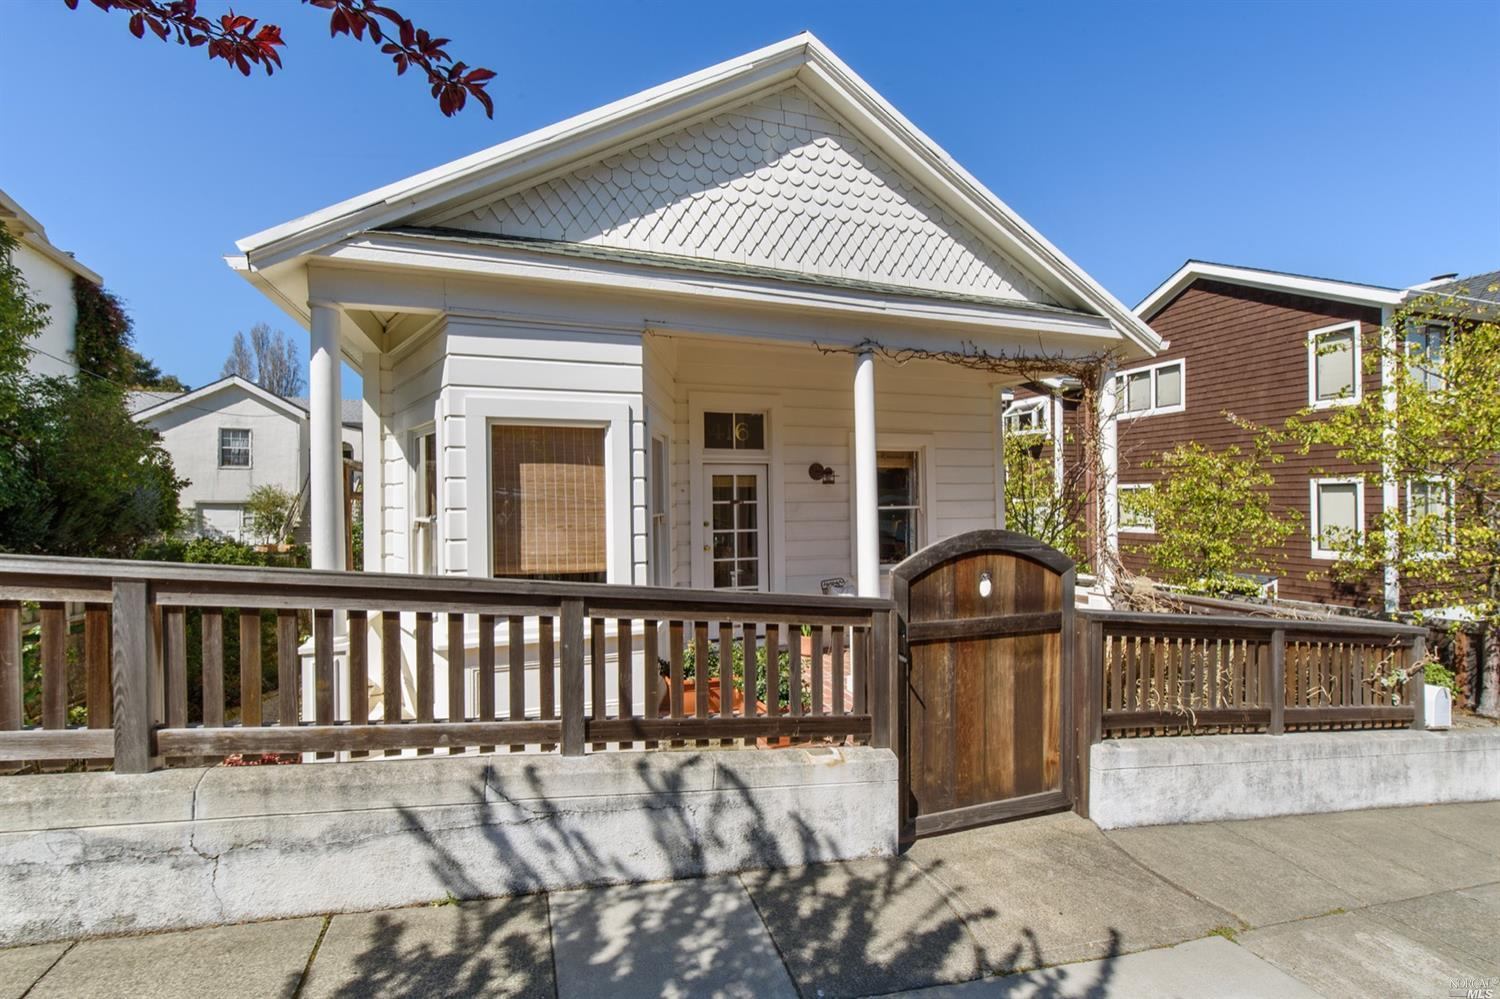 Fantastic two-unit Sausalito property in the BEST location! Front cottage is 2br/1ba, nicely updated with tall ceilings and loads of charm. Just behind is a separate residence with space below that is currently being used as a home office (rumor has it that the space used to be a boat house many years ago!), a storage room or additional office and a super-stylish 1br/1ba updated apartment above. Each unit has its own washer and dryer. A large back patio area is at the rear of the property, perfect for relaxing or entertaining.The gated driveway leads to ample off-street parking. This has been owner-occupied and thus, neither unit has been rented for the last 8 years. A great investor opportunity as the use here is so flexible. Location can't be beat - Caledonia Street is about half a block away with all its shops, cafes and restaurants. Or, it is a quick hop into San Francisco if desired!